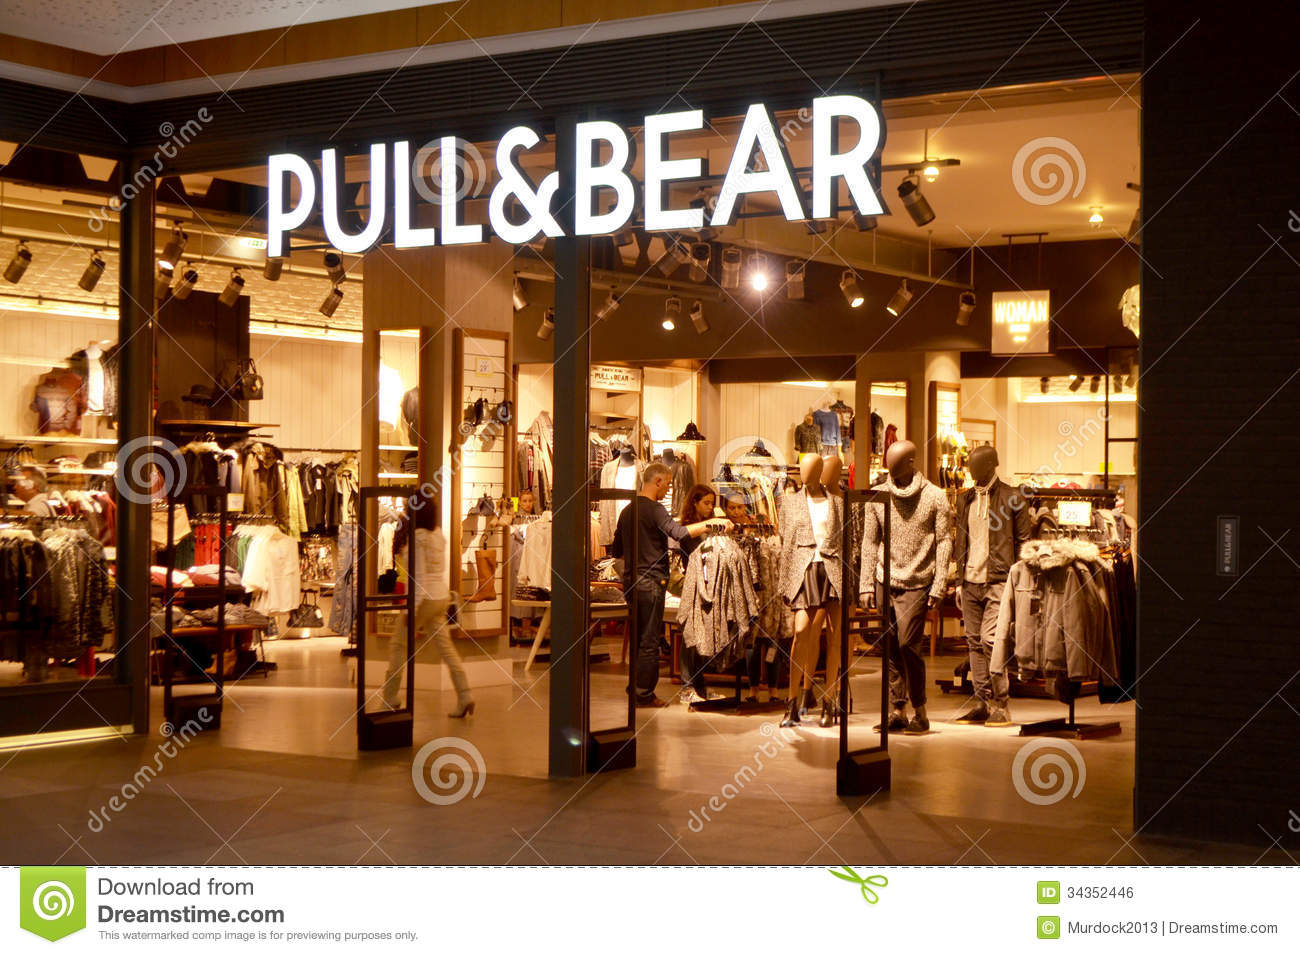 Black bear clothing store